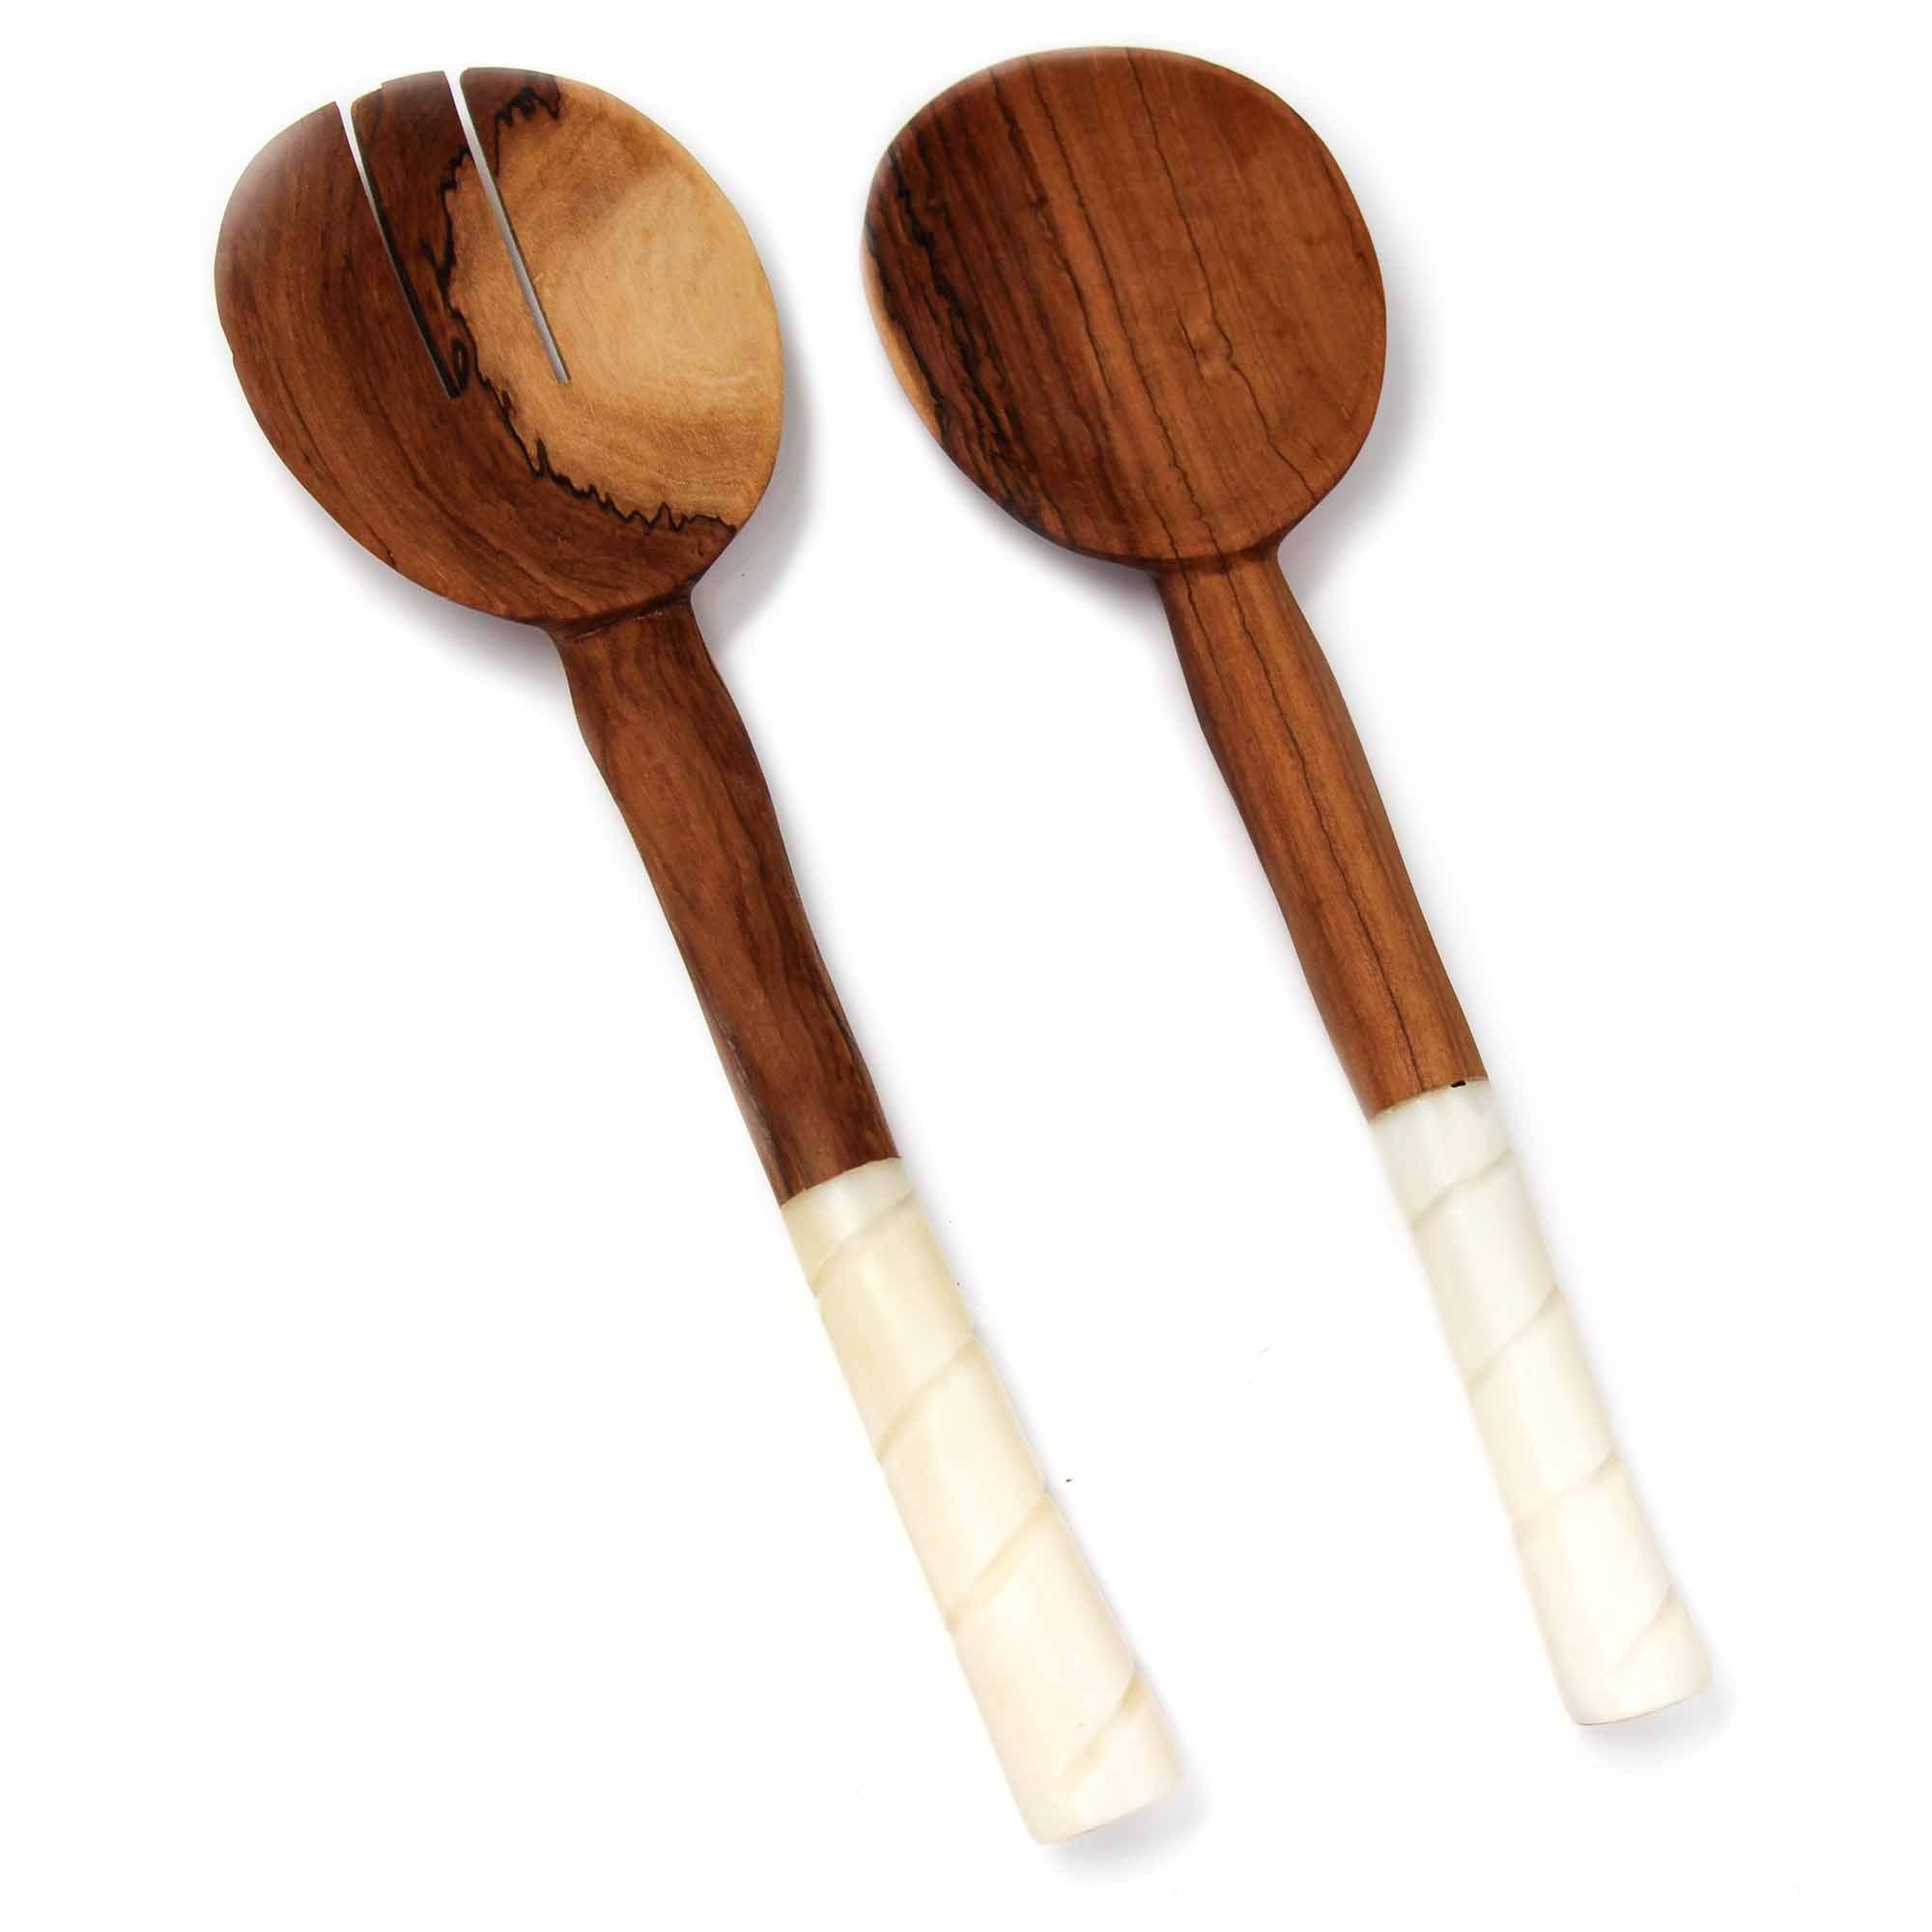 Olive Wood Salad Servers with Bone Handles, White with Etching Design